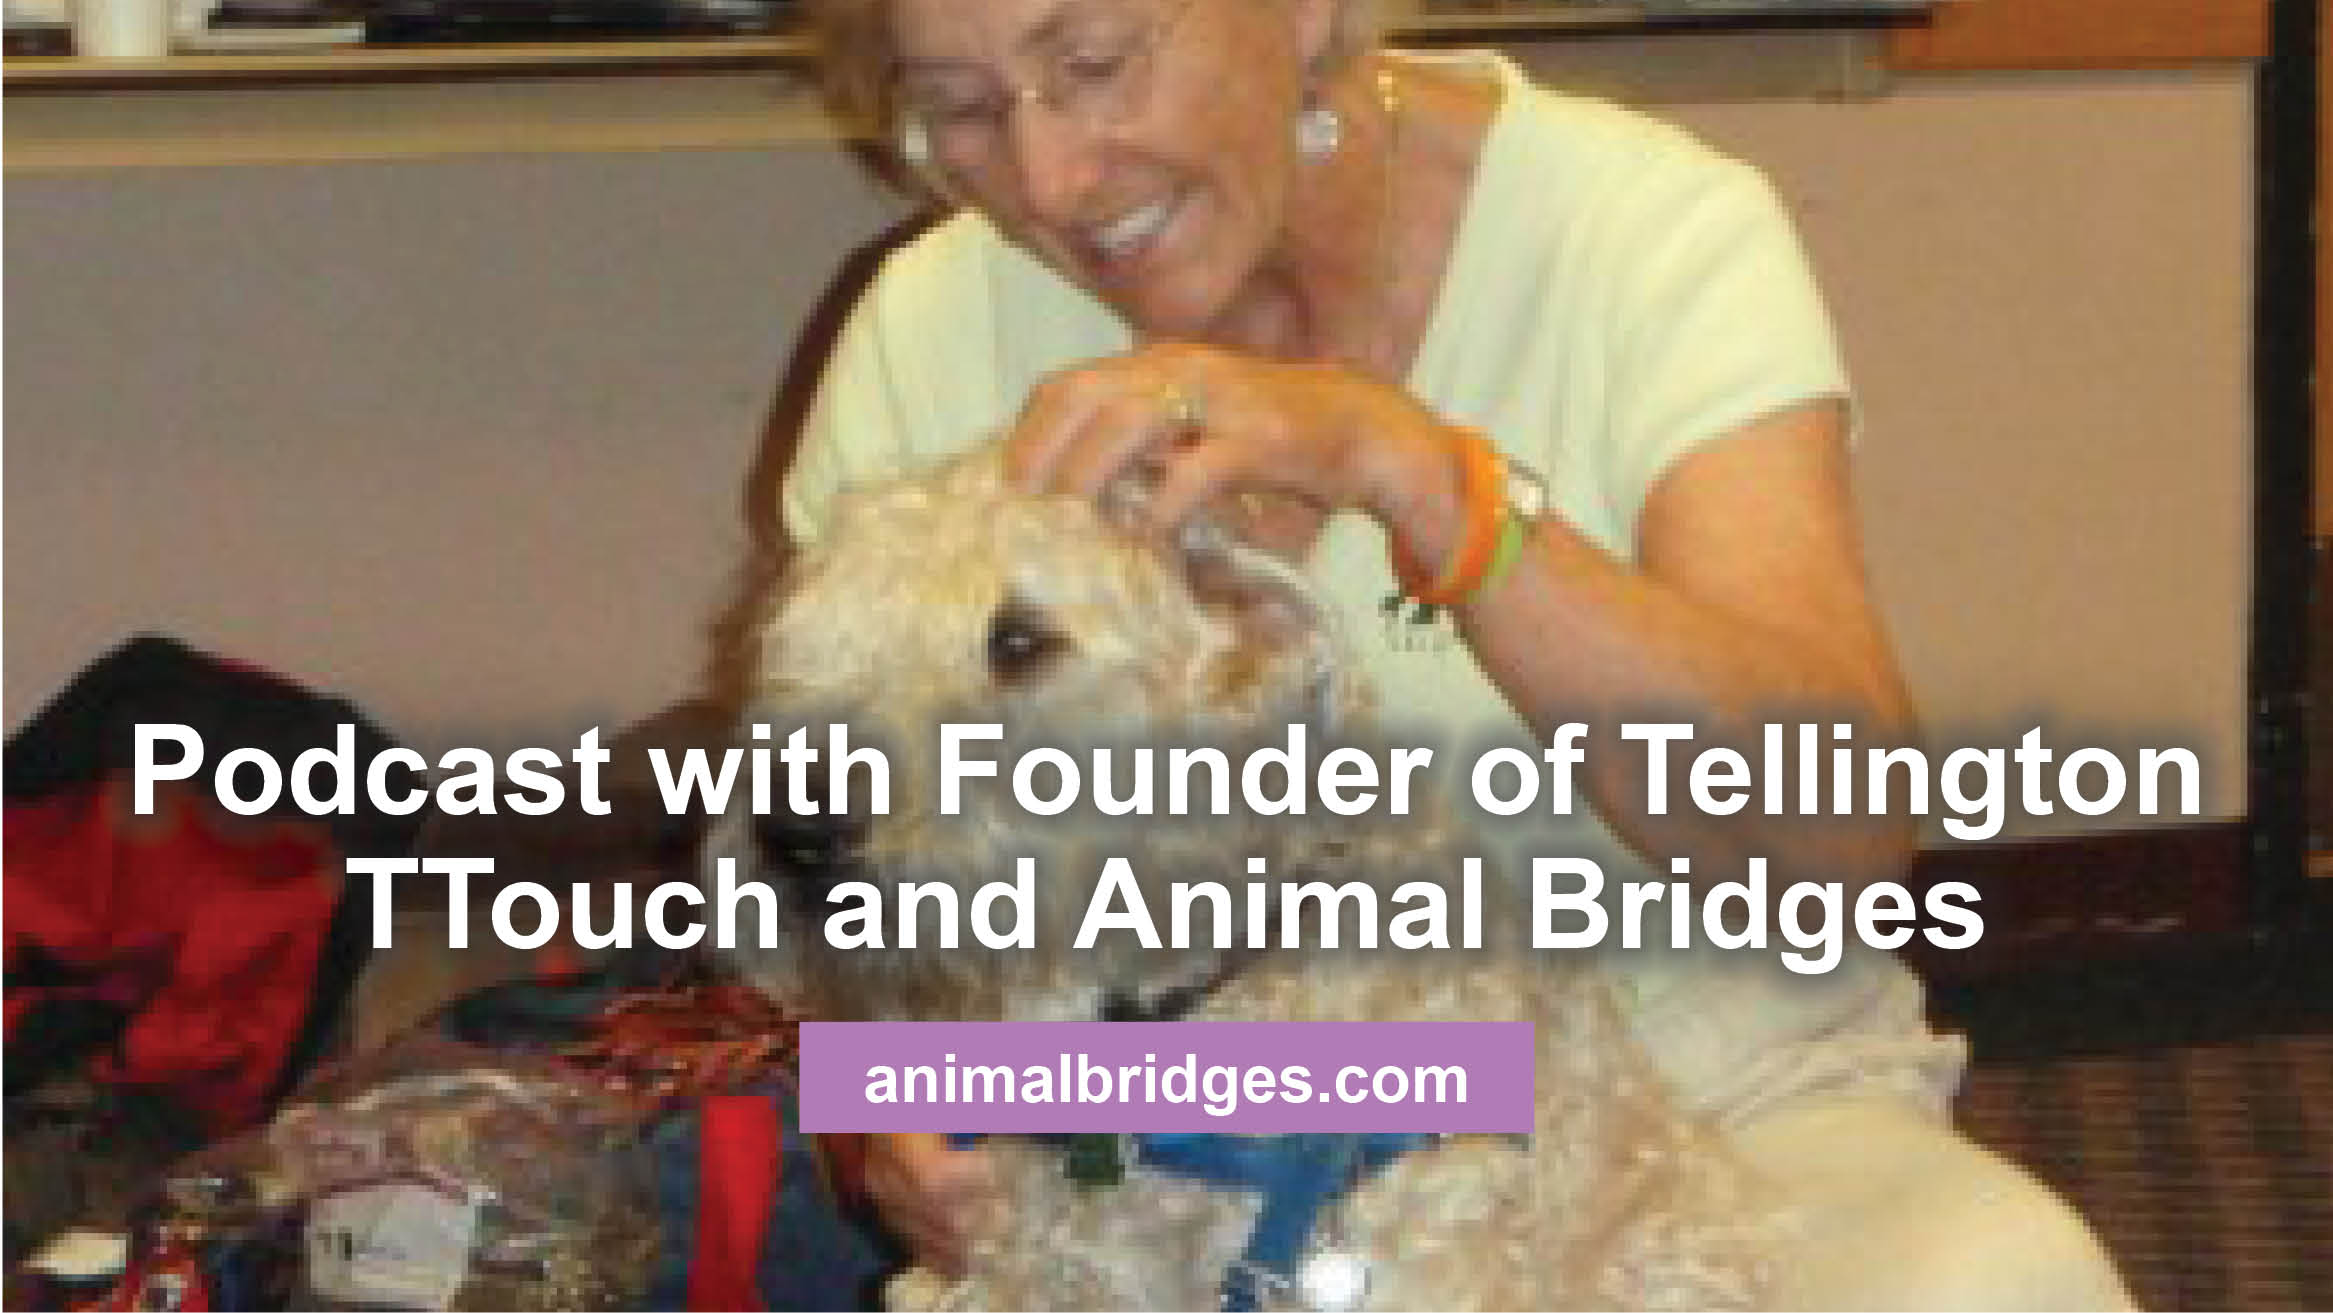 Podcast with Founder of Tellington TTouch and Animal Bridges